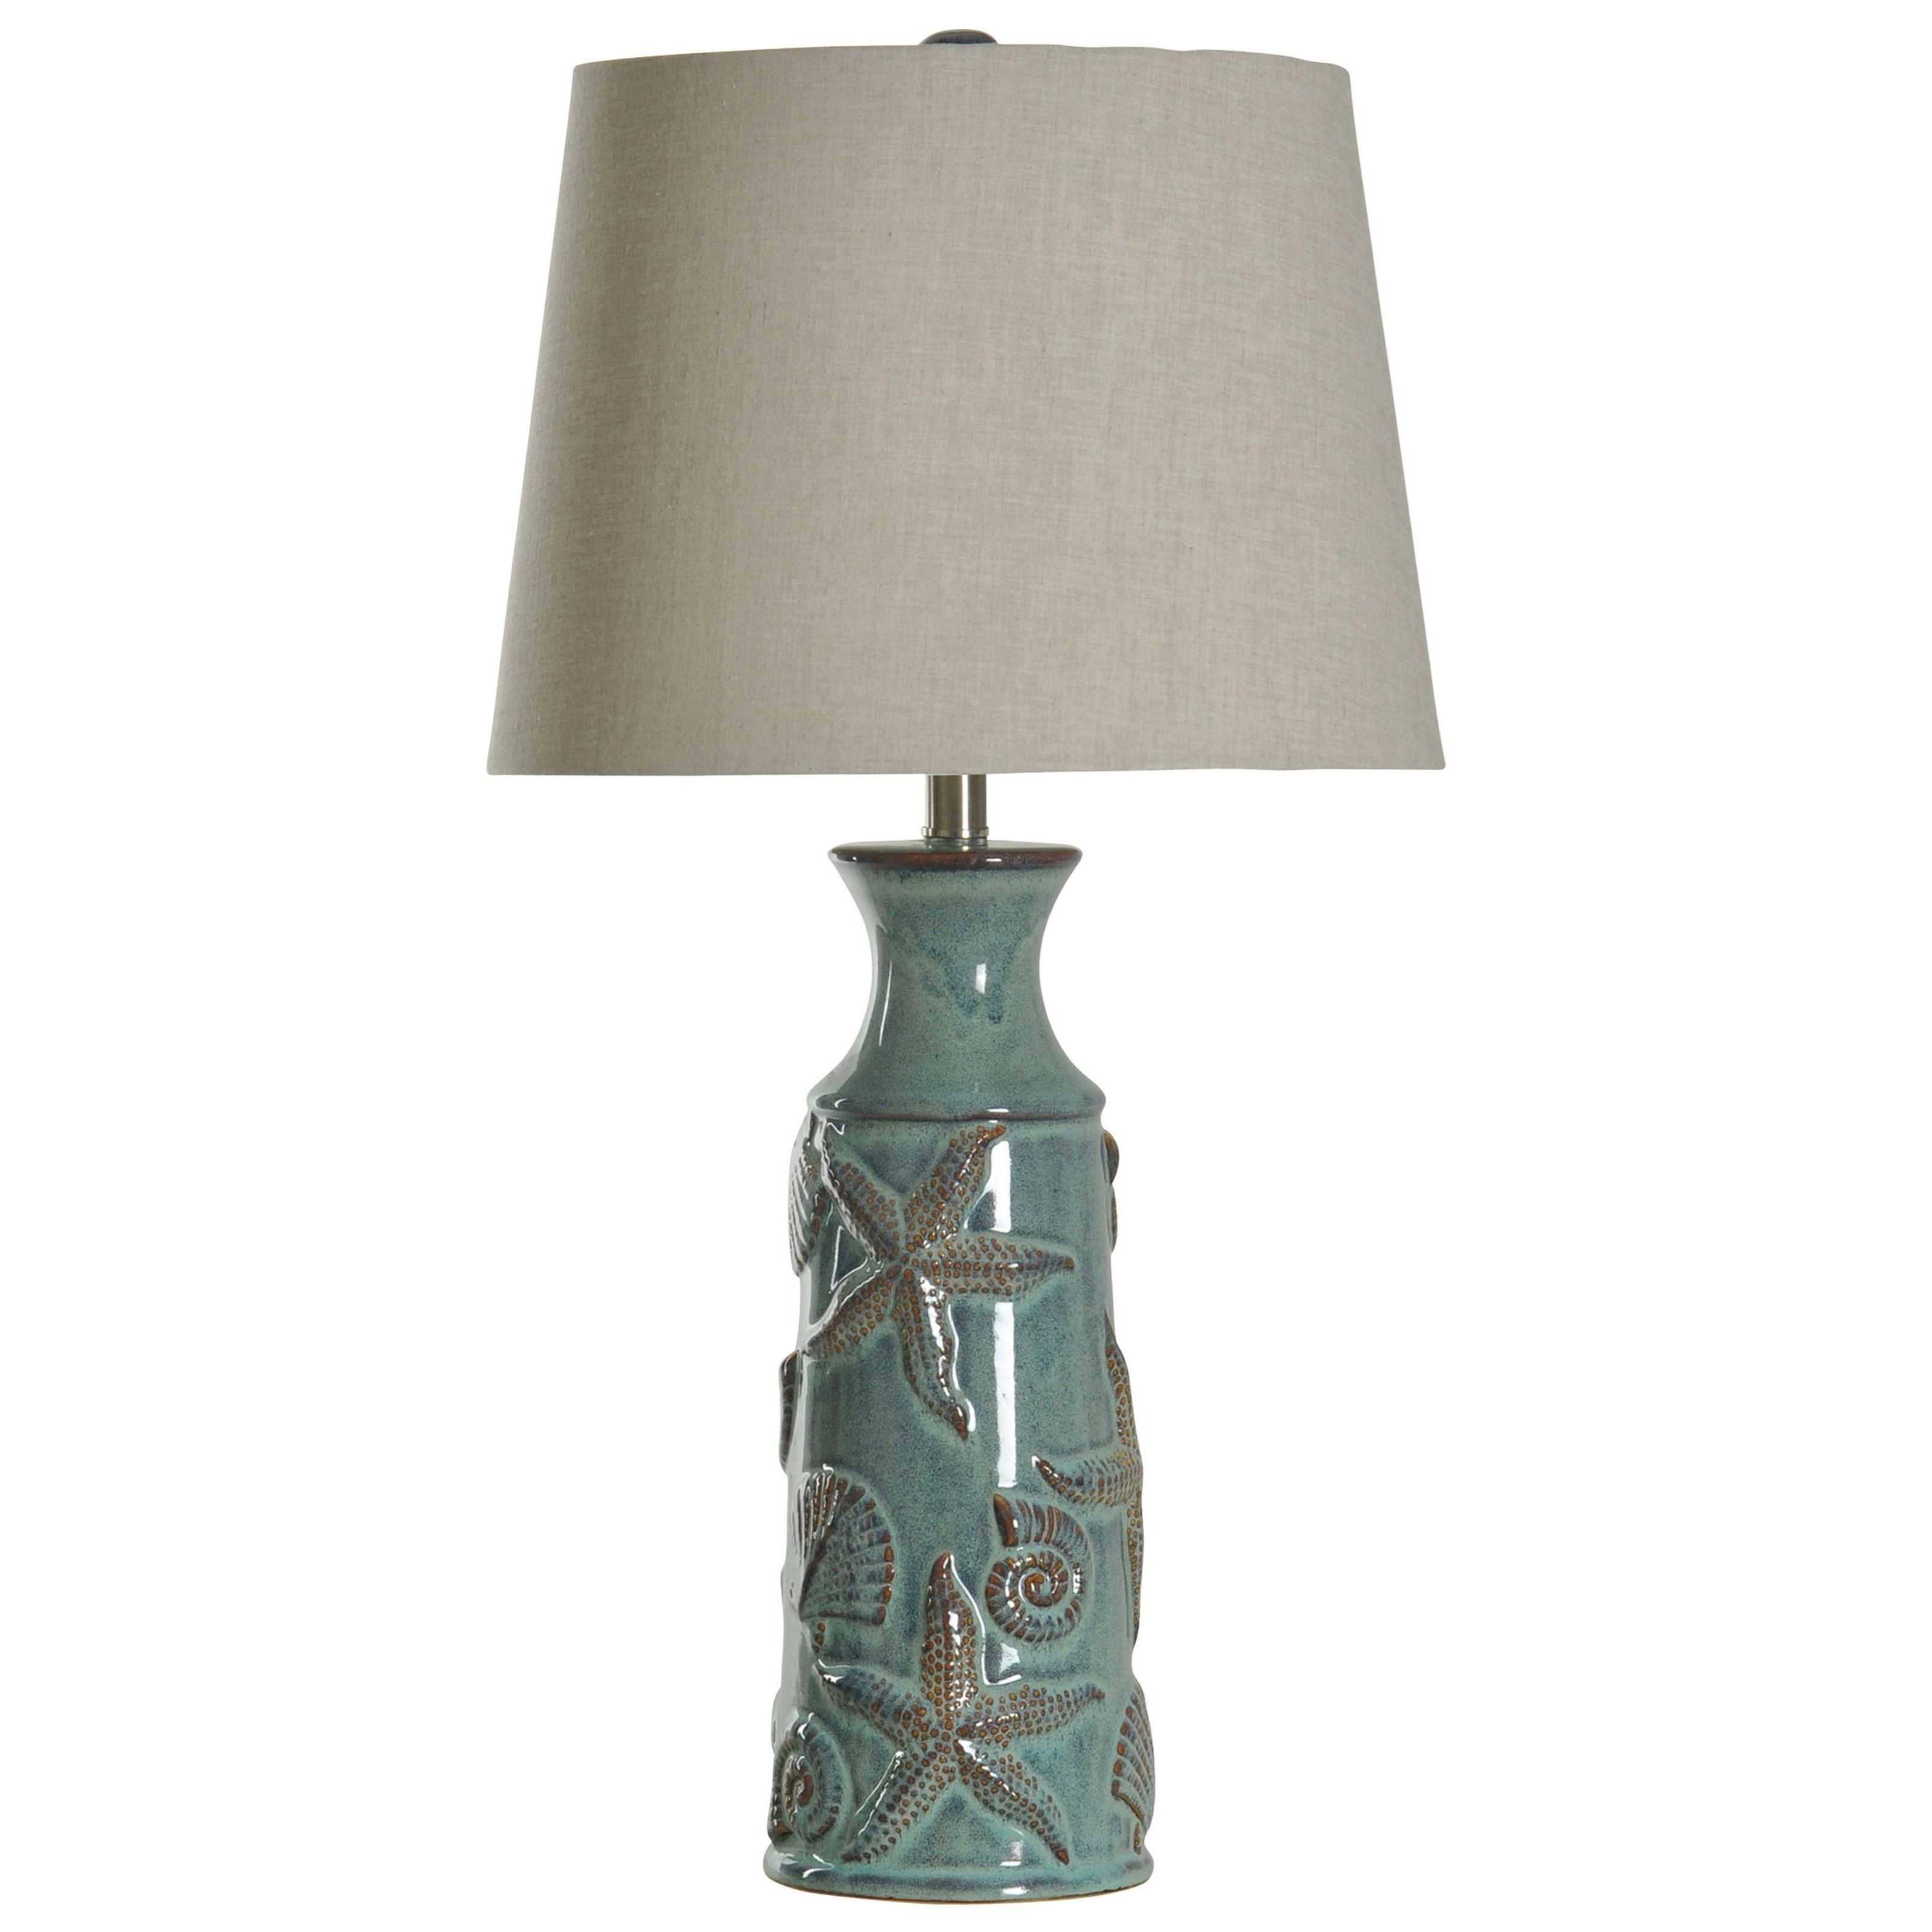 StyleCraft Lamps Nautical Ceramic Table Lamp In Blue Bay Finish Natural  Linen Shade   Hudsonu0027s Furniture   Table Lamps